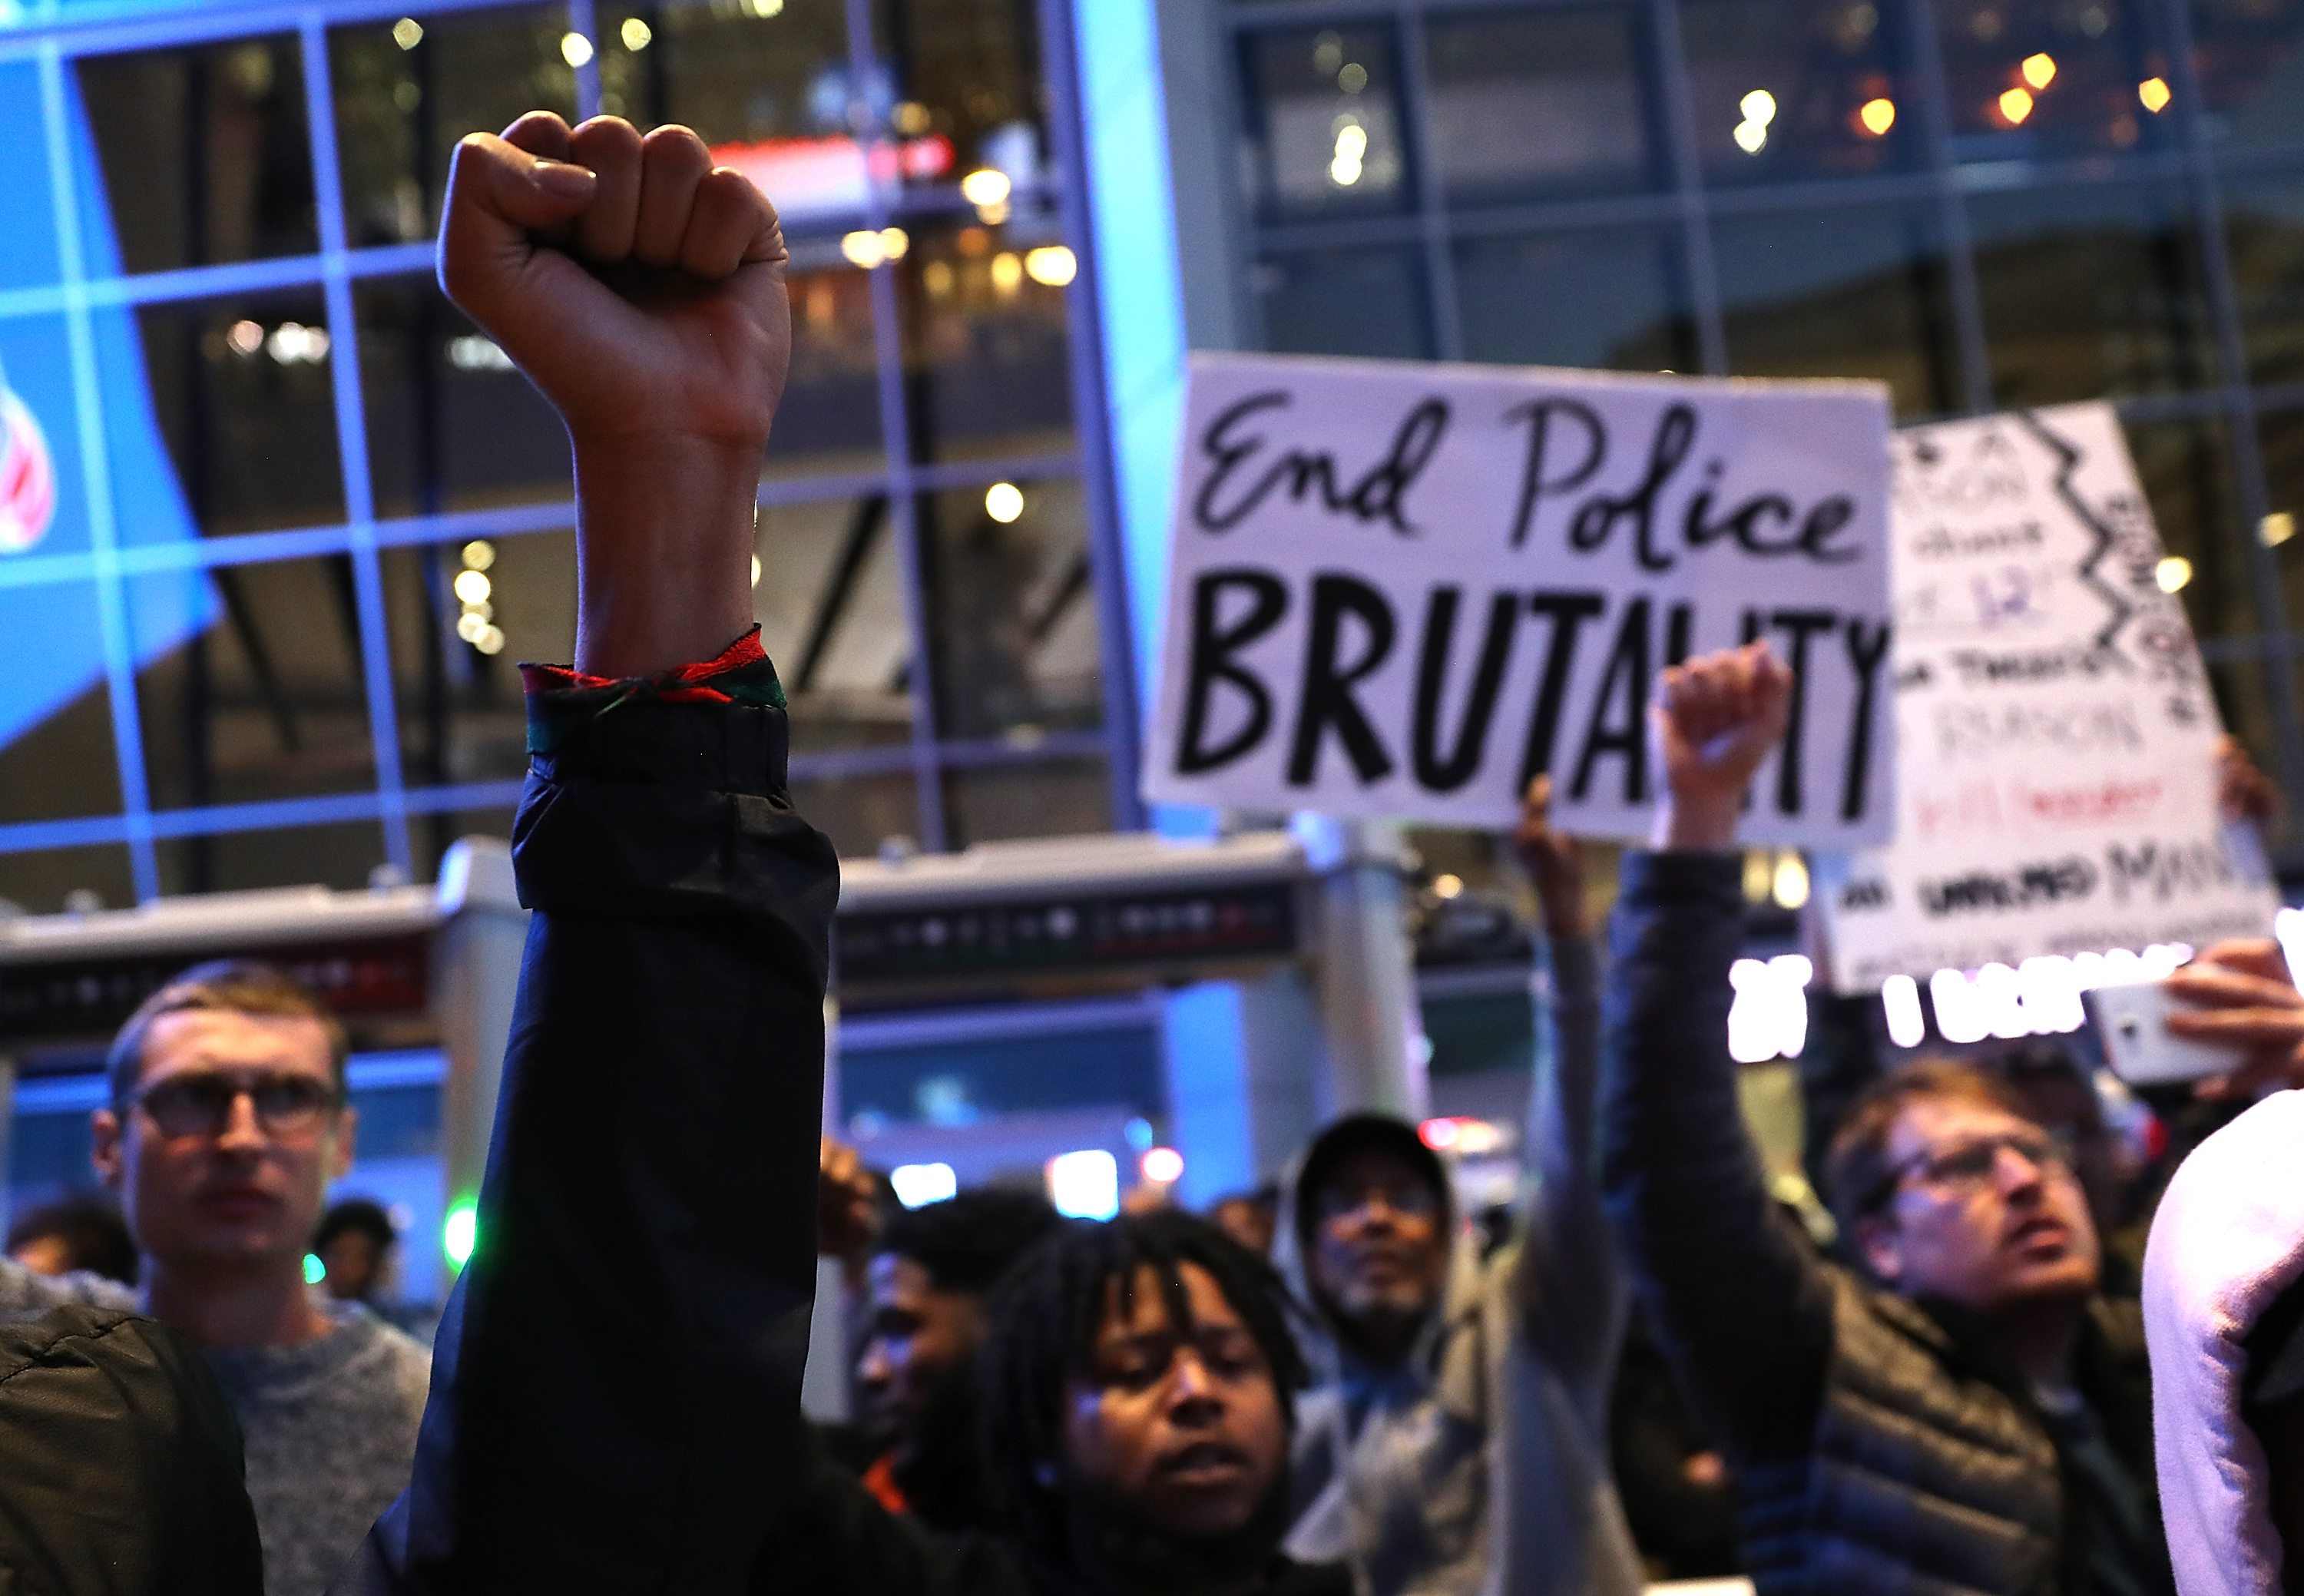 Black Live Matter protesters hold their fists in the air as they block the entrance to the Golden 1 Center during a demonstration on March 22, 2018 in Sacramento.